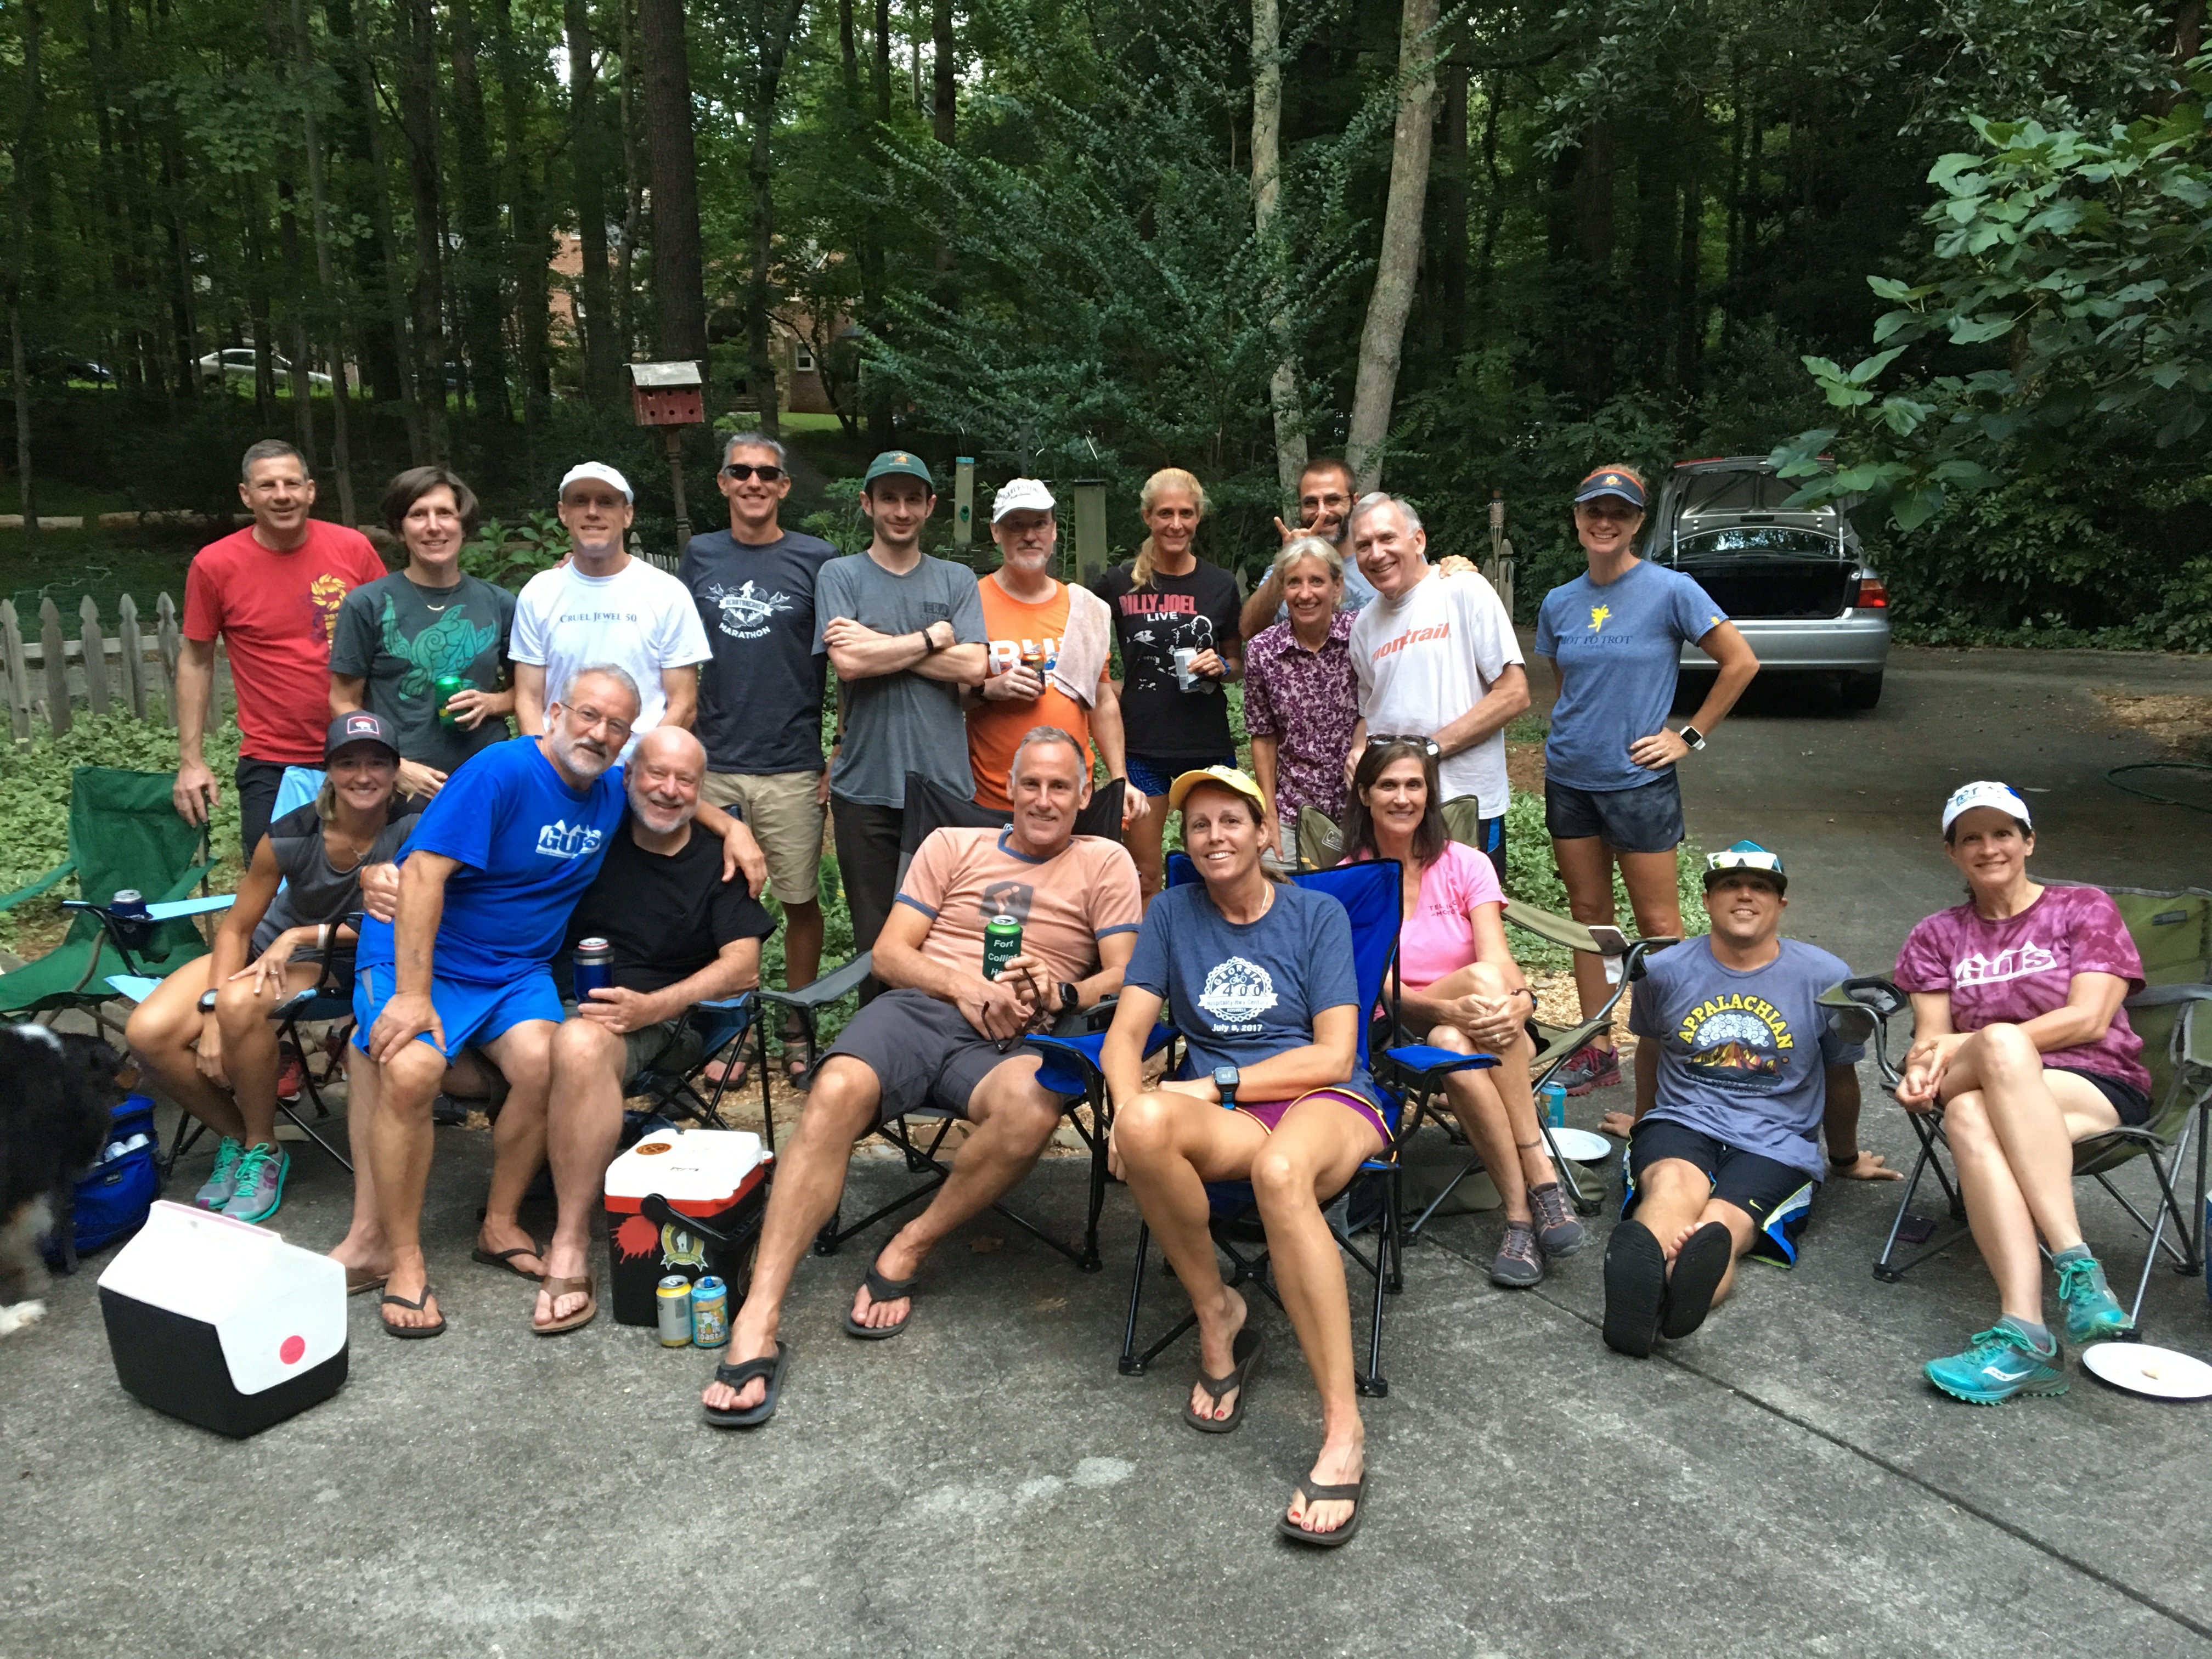 Group of runners posing for a picture after a group run outside the trail entrance sitting in chairs with coolers.